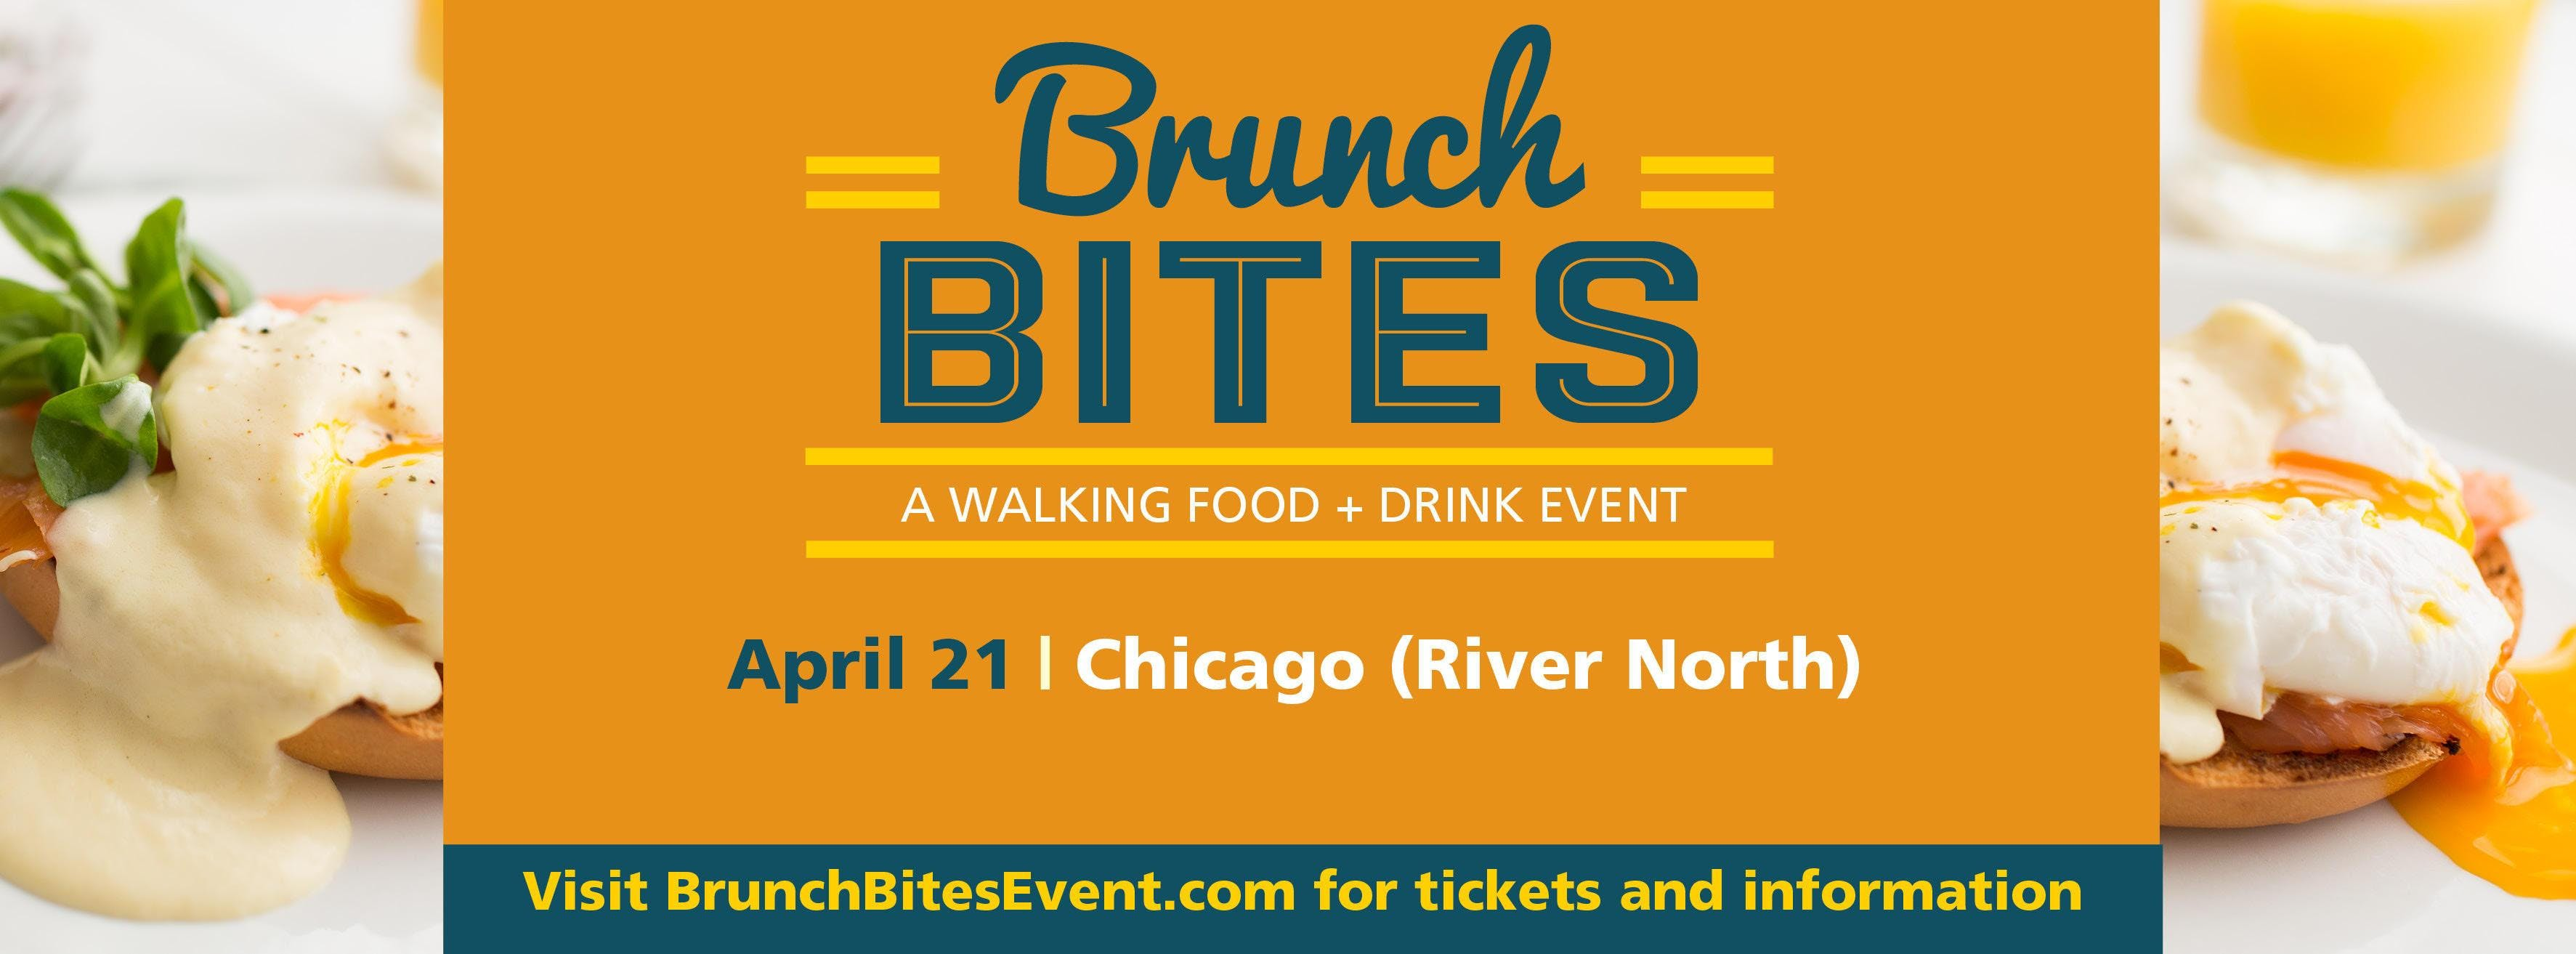 Brunch Bites - Chicago (River North)